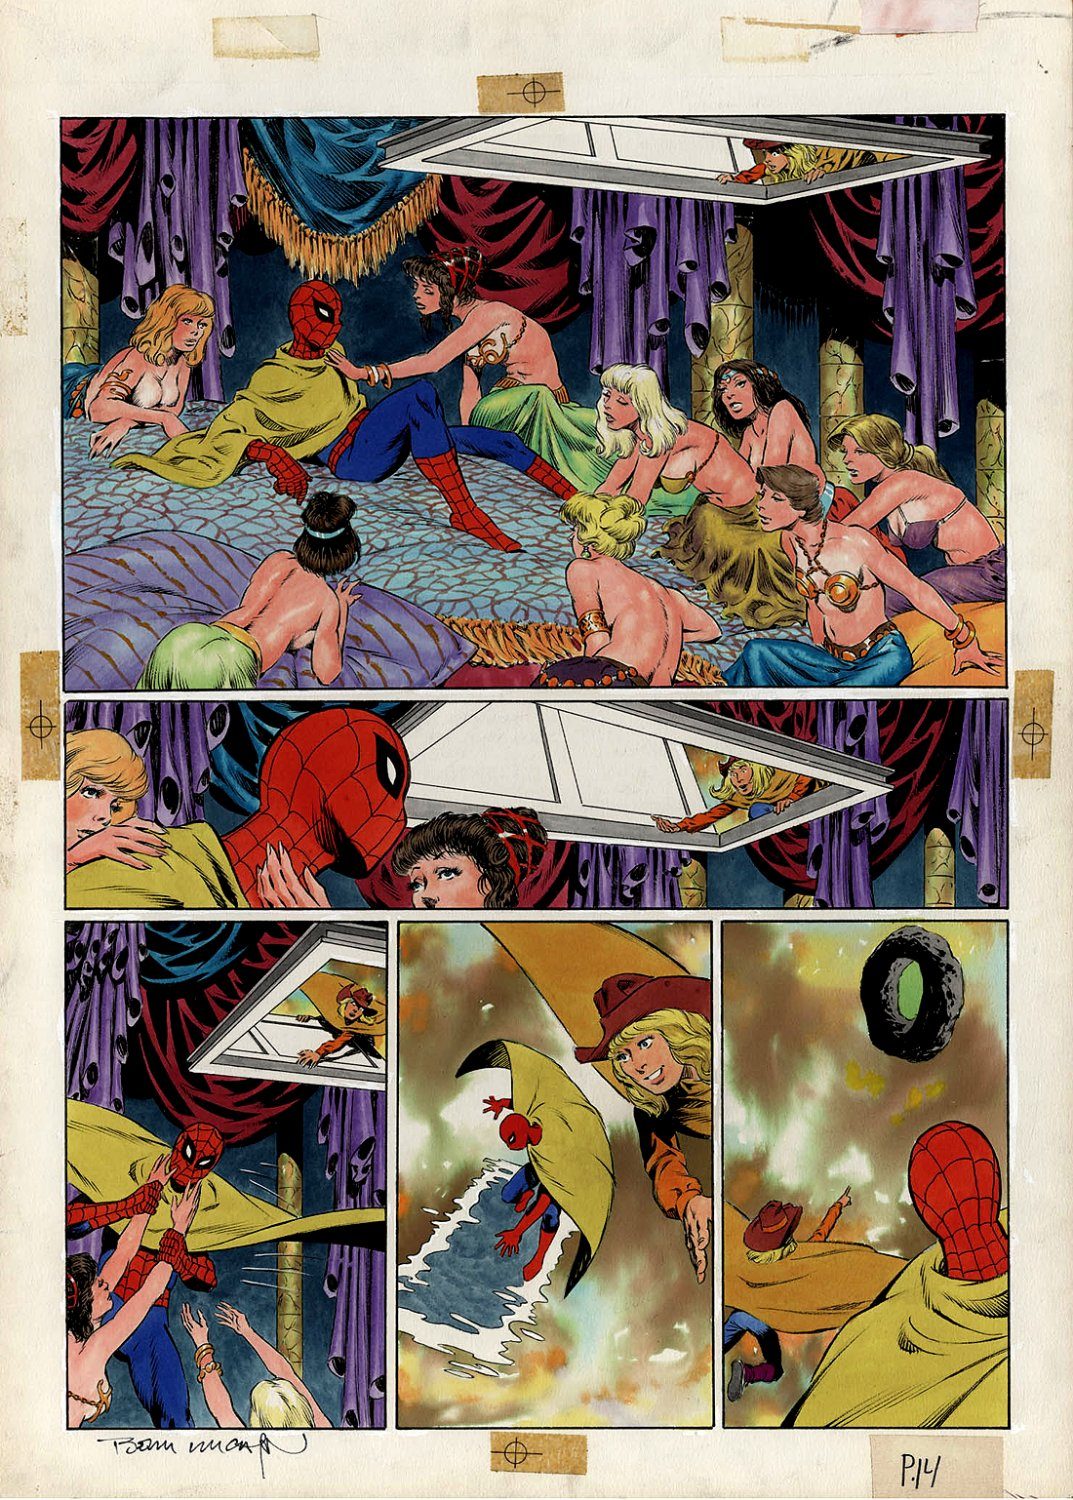 Amazing Spider-Man: Hooky Marvel Graphic Novel Page 14 Painting (SPIDER-MAN IN EVERY PANEL!) Large Art - 1986